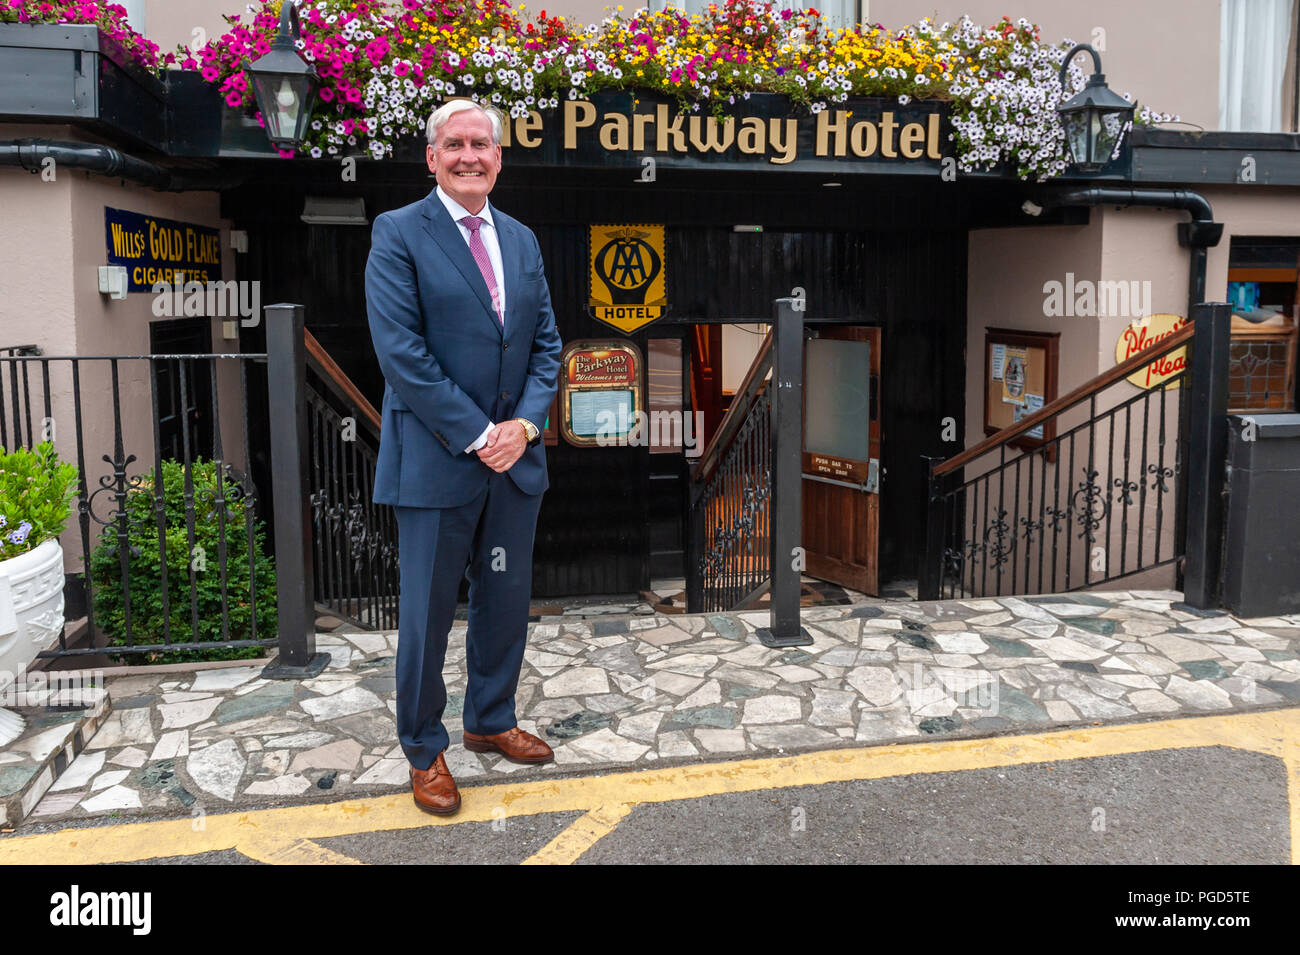 Dunmanway, West Cork, Ireland. 25th Aug, 2018. The Canadian Ambassador to Ireland, Kevin Vickers, is attending the Kingston Gathering at the Dunmanway Parkway Hotel tonight. Mr Kingston famously helped end the Parliament shootings in 2014 when he shot a gunman who had killed a ceremonial guard and shot a police constable at the Canadian National War Memorial. Credit: Andy Gibson/Alamy Live News. - Stock Image